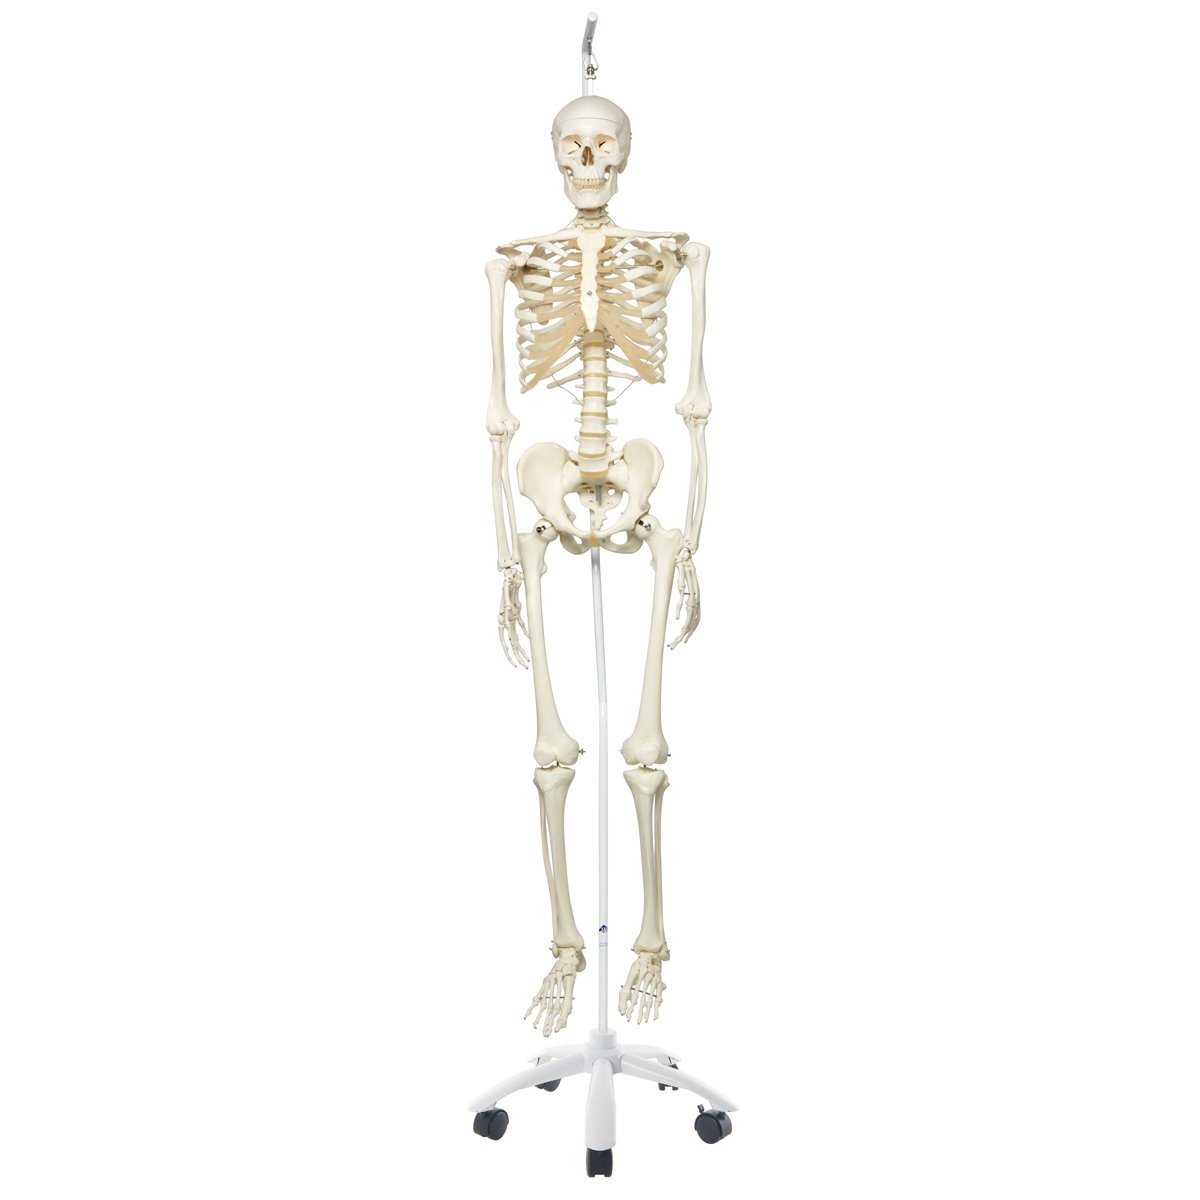 3B Scientific A10 1 Plastic Human Skeleton Model Stan On Hanging 5 Foot Roller Stand 73.2 Height